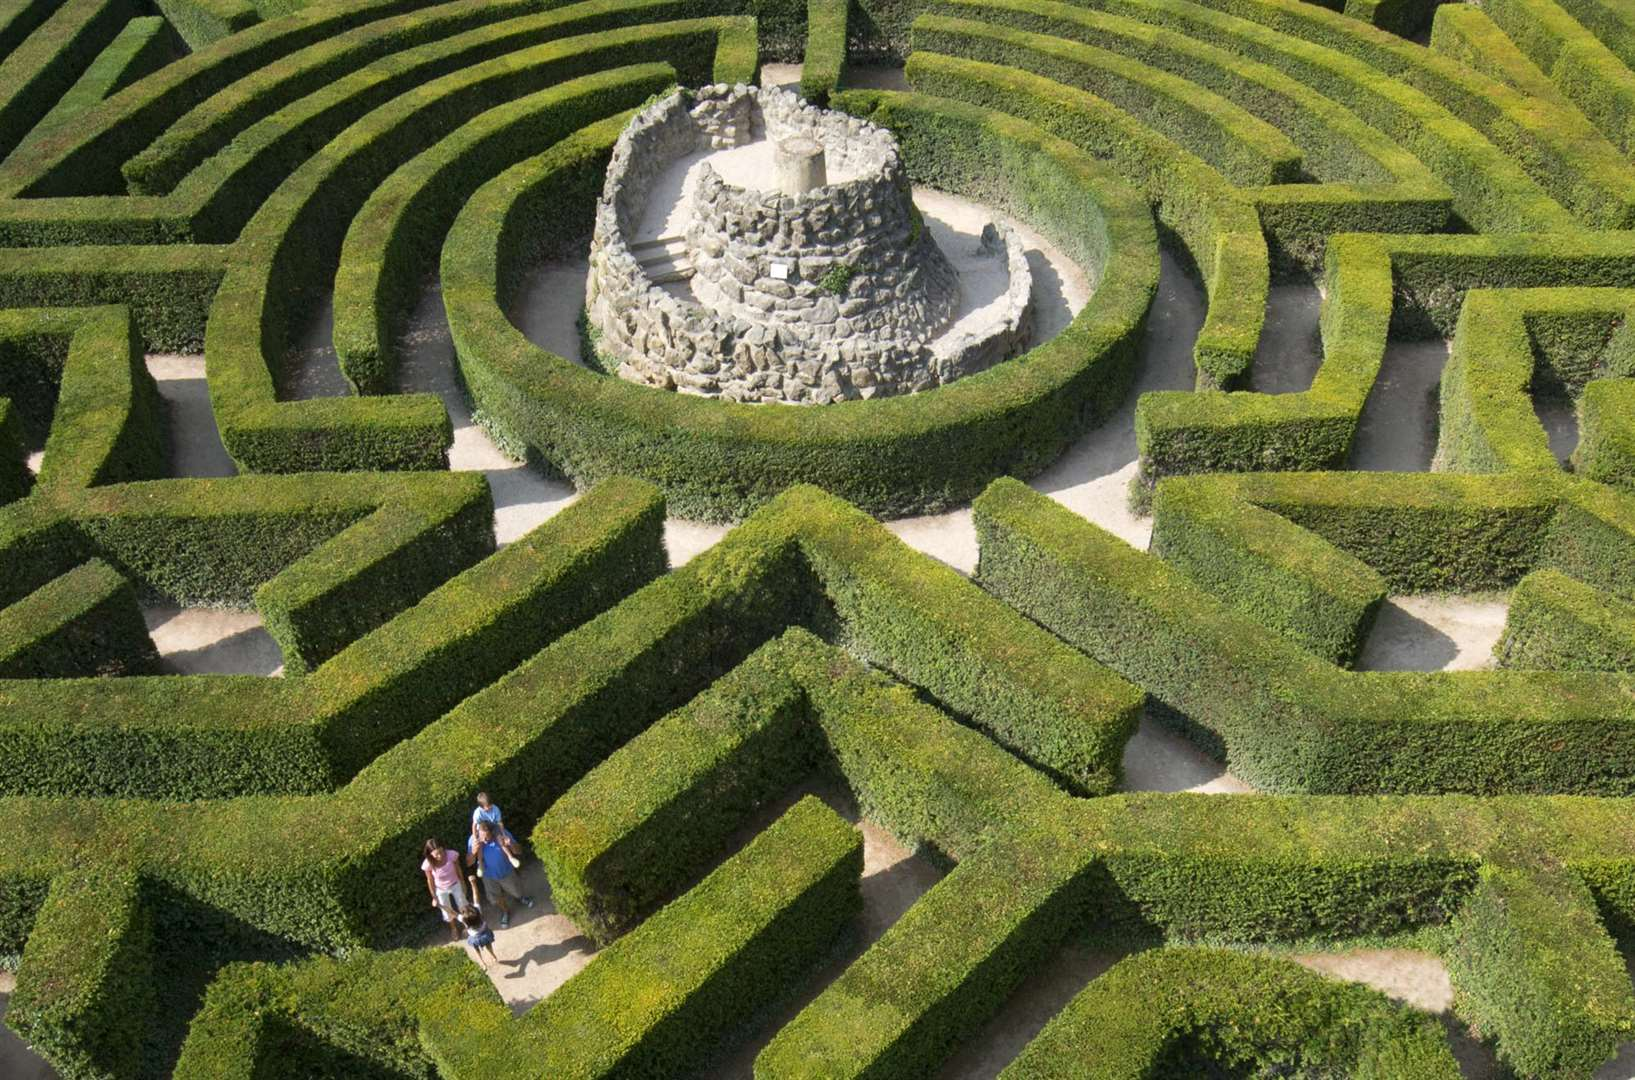 The maze at Leeds Castle